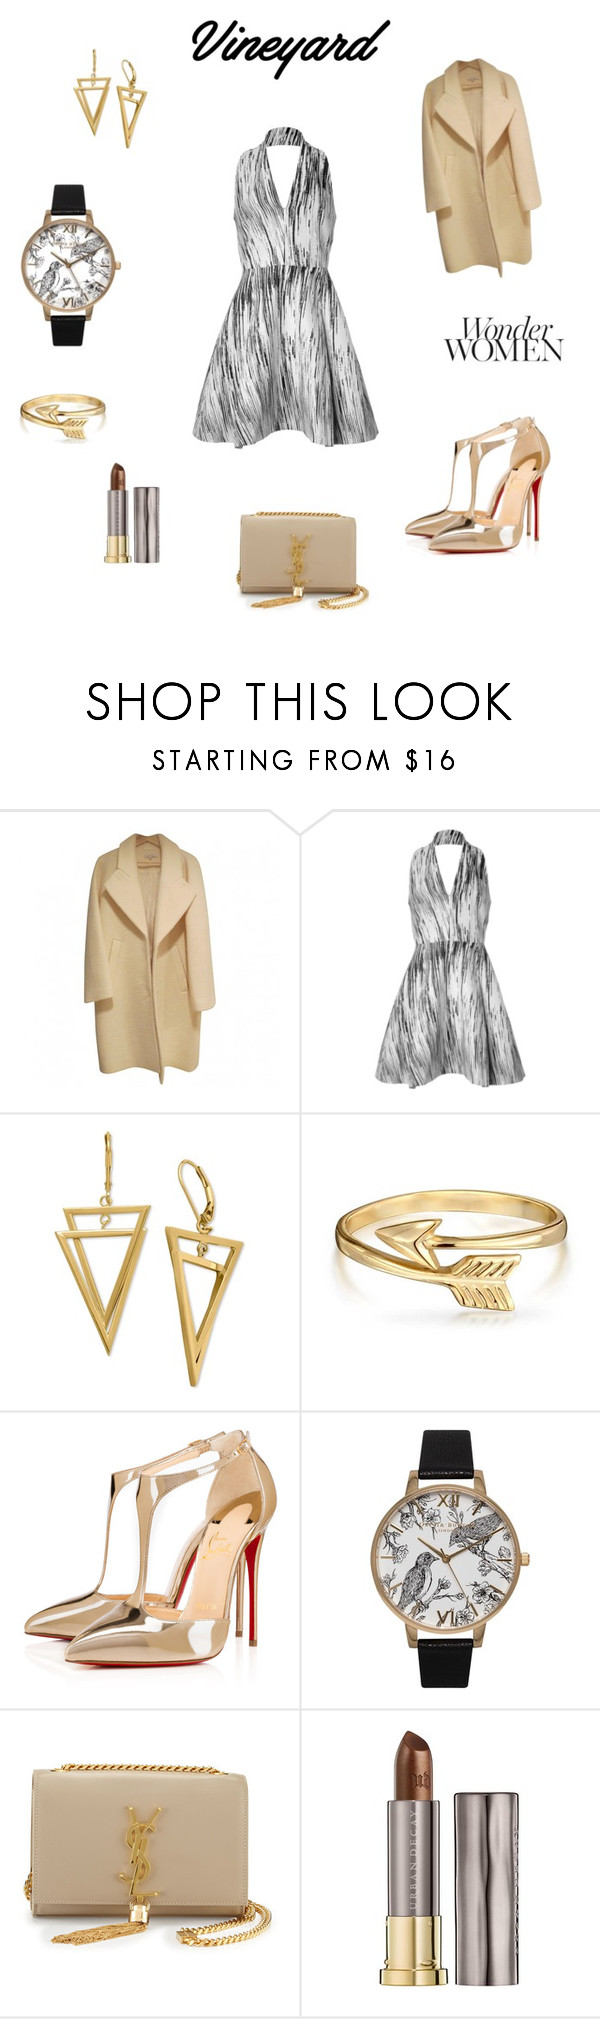 """""""In a Moment's Time"""" by gzvip78 ❤ liked on Polyvore featuring Kenzo, Bling Jewelry, Christian Louboutin, Olivia Burton, Yves Saint Laurent, Urban Decay, napa, winerywedding, bestdressedguest and vineyardwedding"""